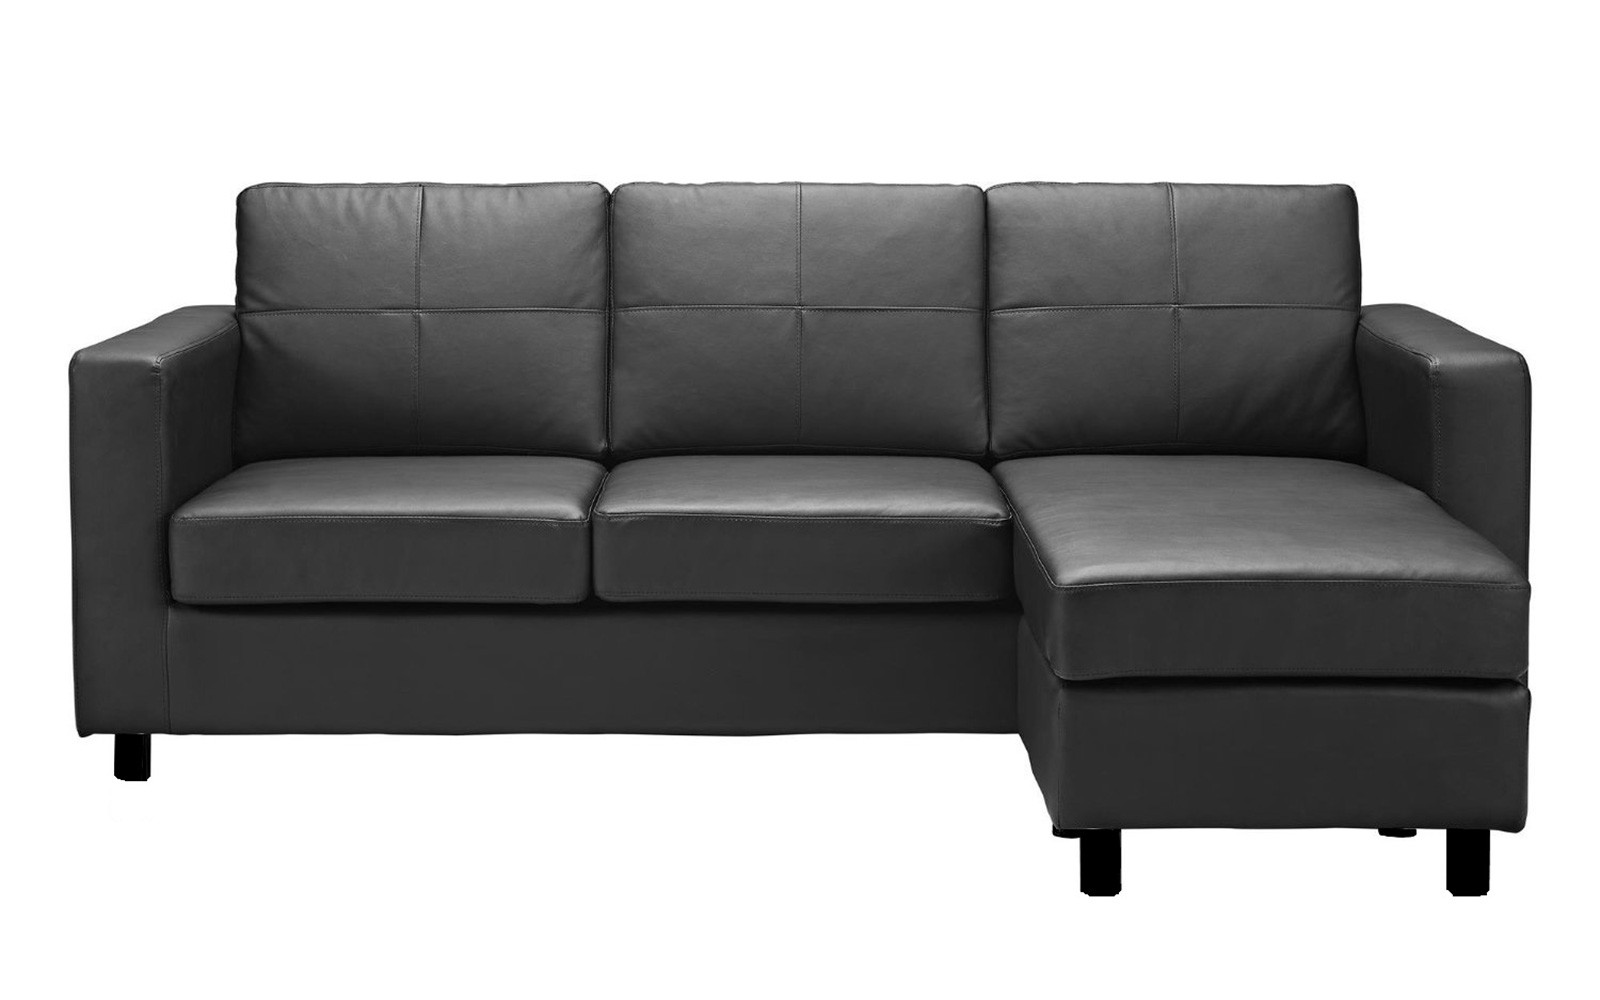 modern reversible small space configurable bonded leather sectional sofa walmartcom. Interior Design Ideas. Home Design Ideas